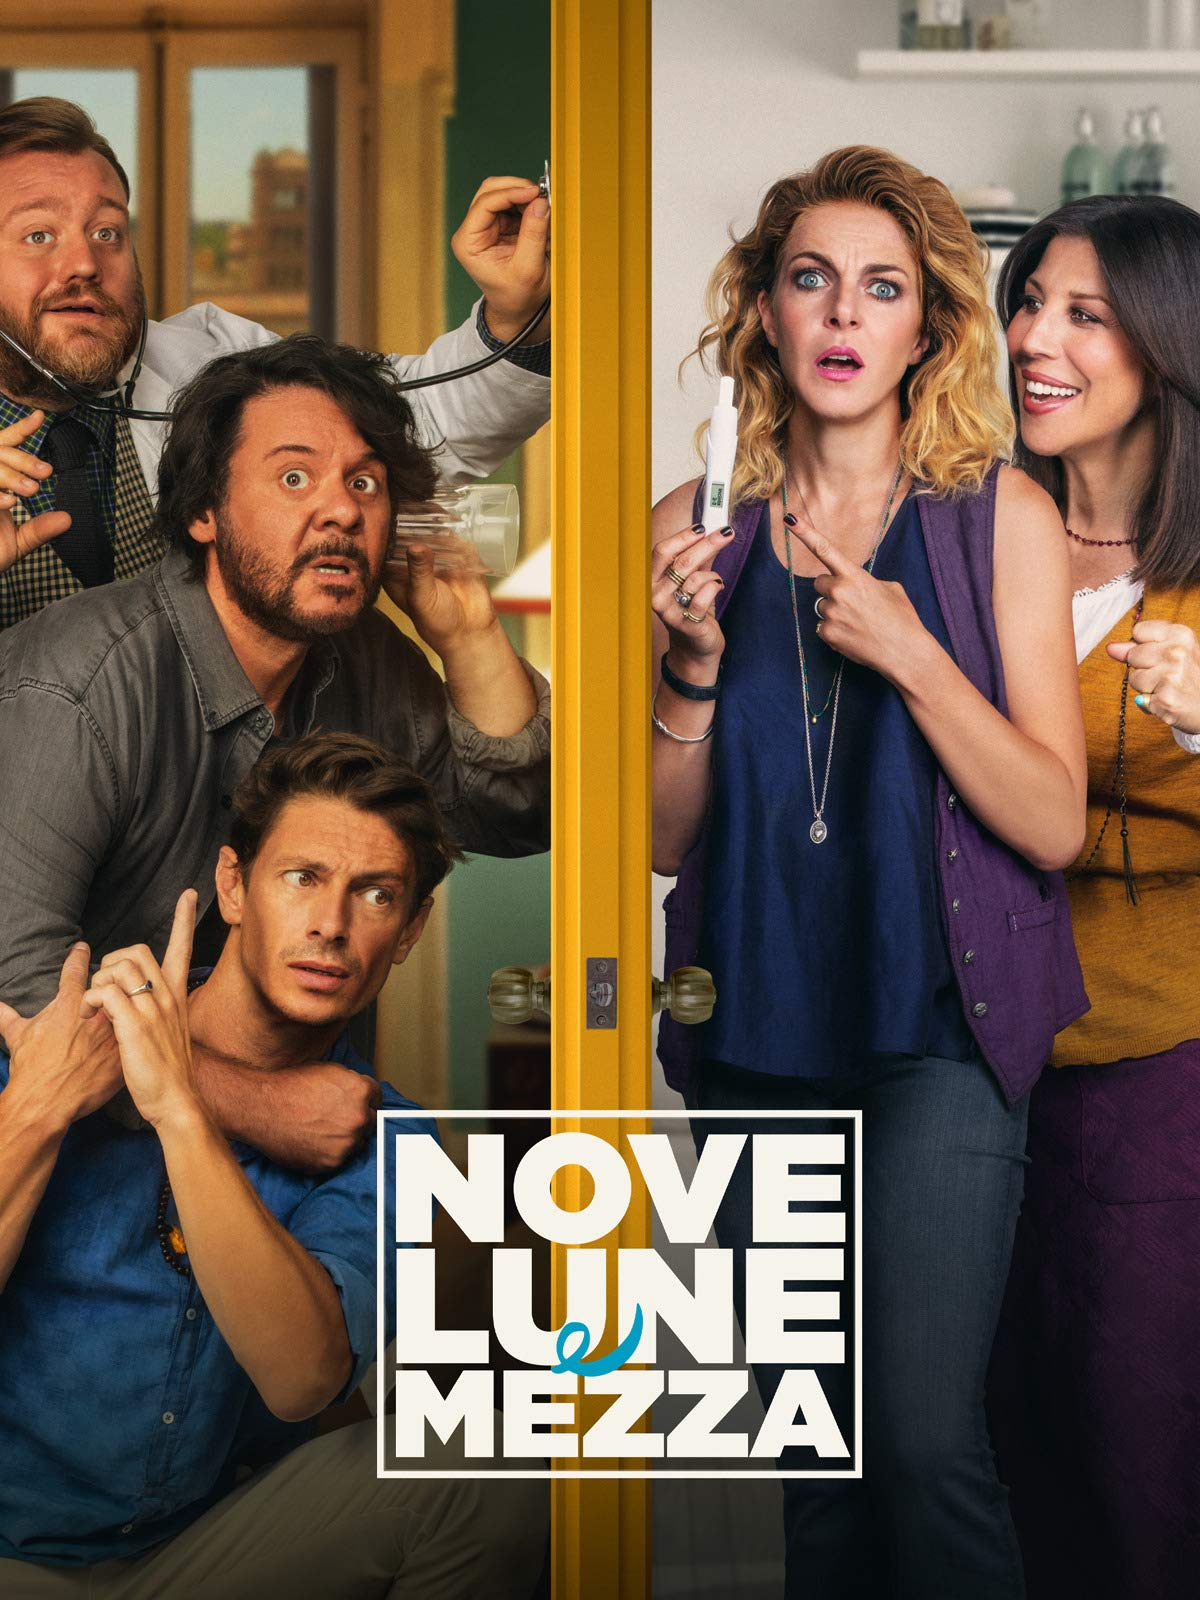 Nove lune e mezzo on Amazon Prime Video UK